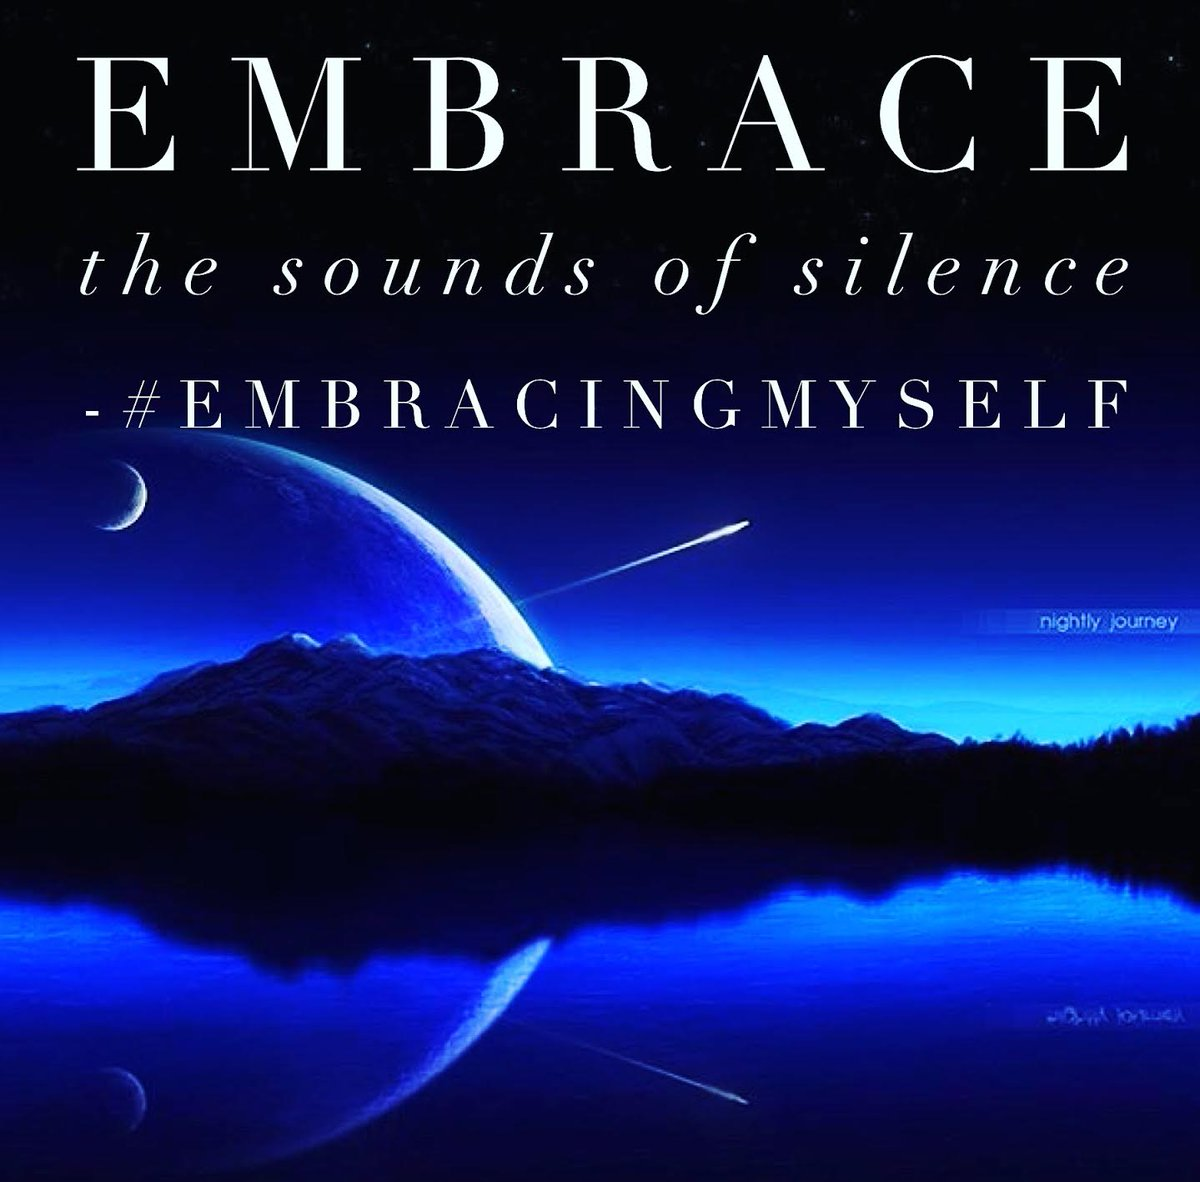 #Embrace the sounds of #silence to find #innerpeace #joy #fulfillment #strength #clarity #empowerment #EmbracingMyself #peaceofmind #peace<br>http://pic.twitter.com/XhGh3pDLuO